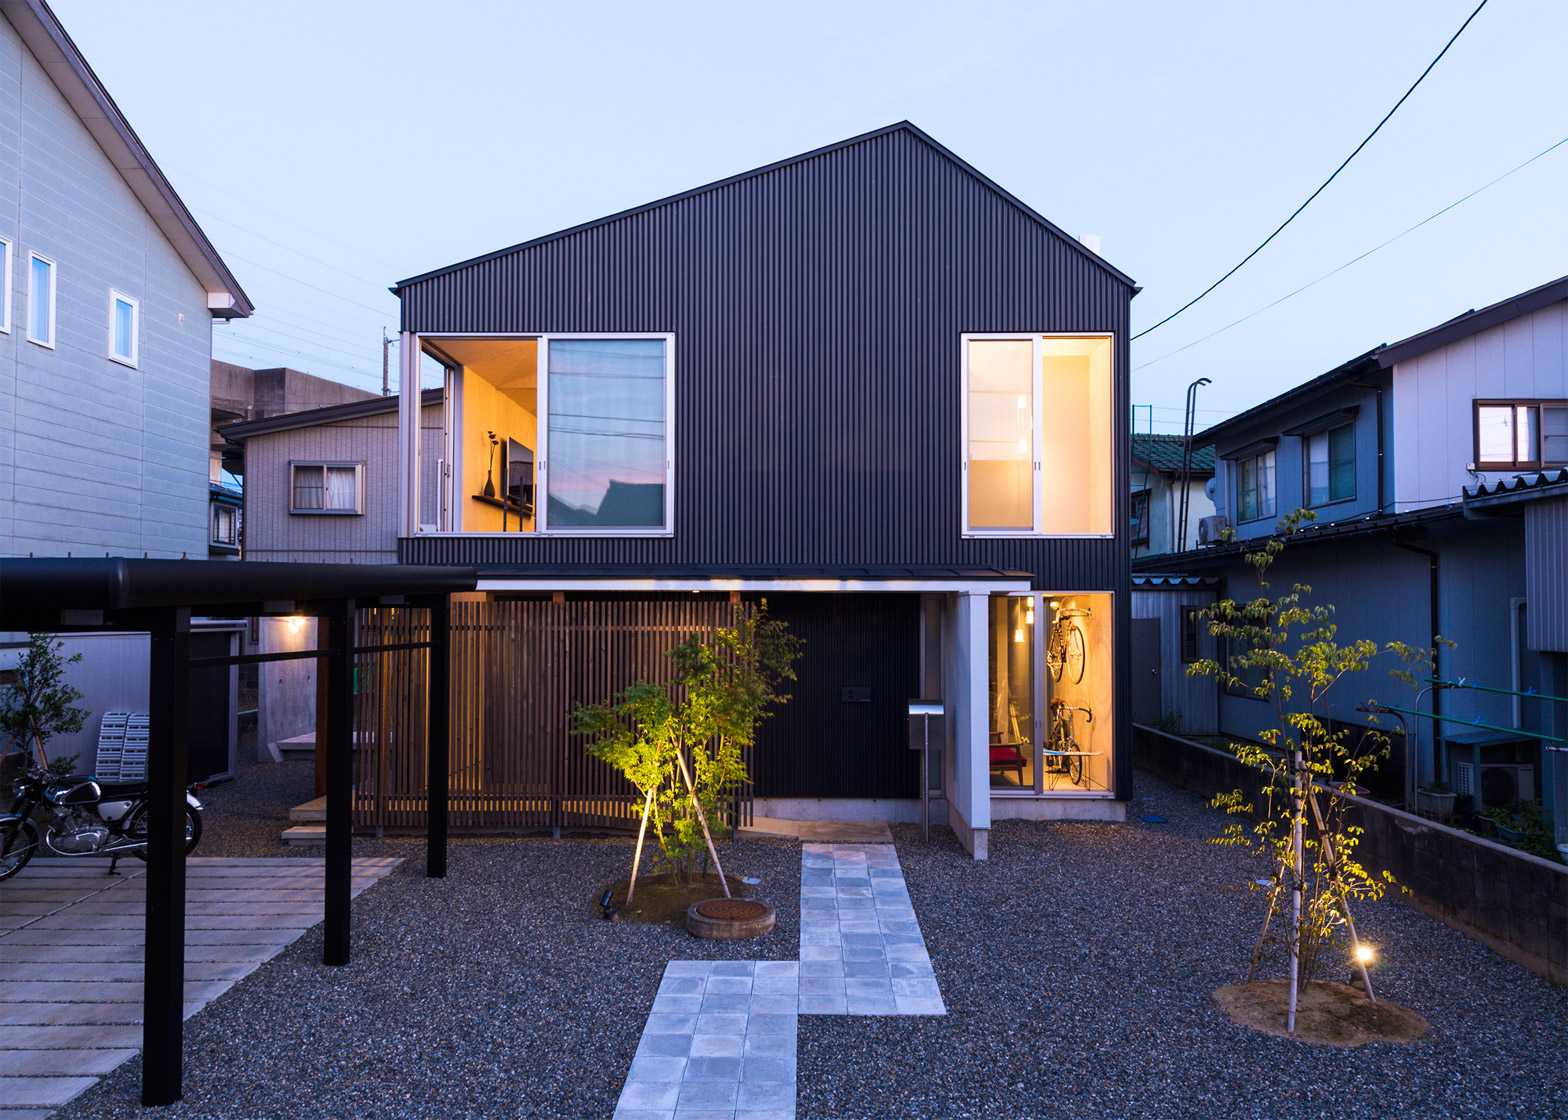 Go Bang House By Takeru Shoji Architects References Traditional Japanese Farmhouses,Hsn Jewelry Designers